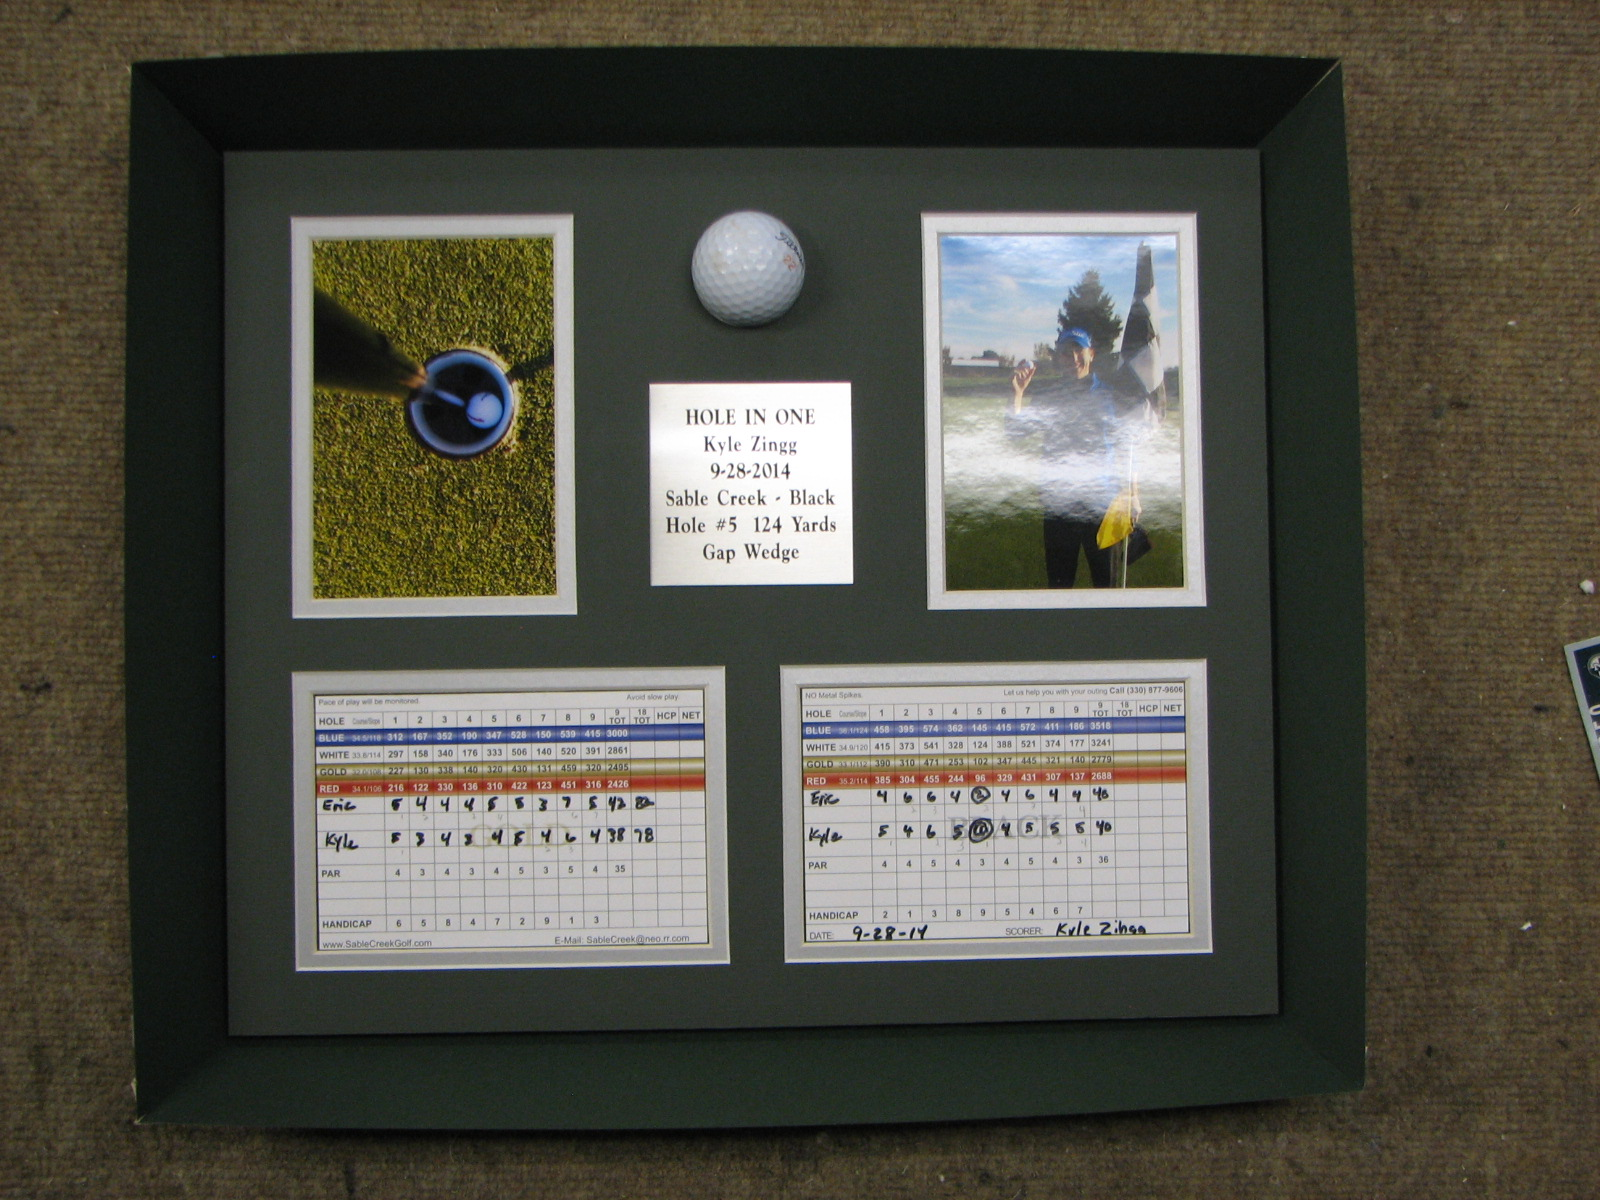 Hole in one with ball and score cards